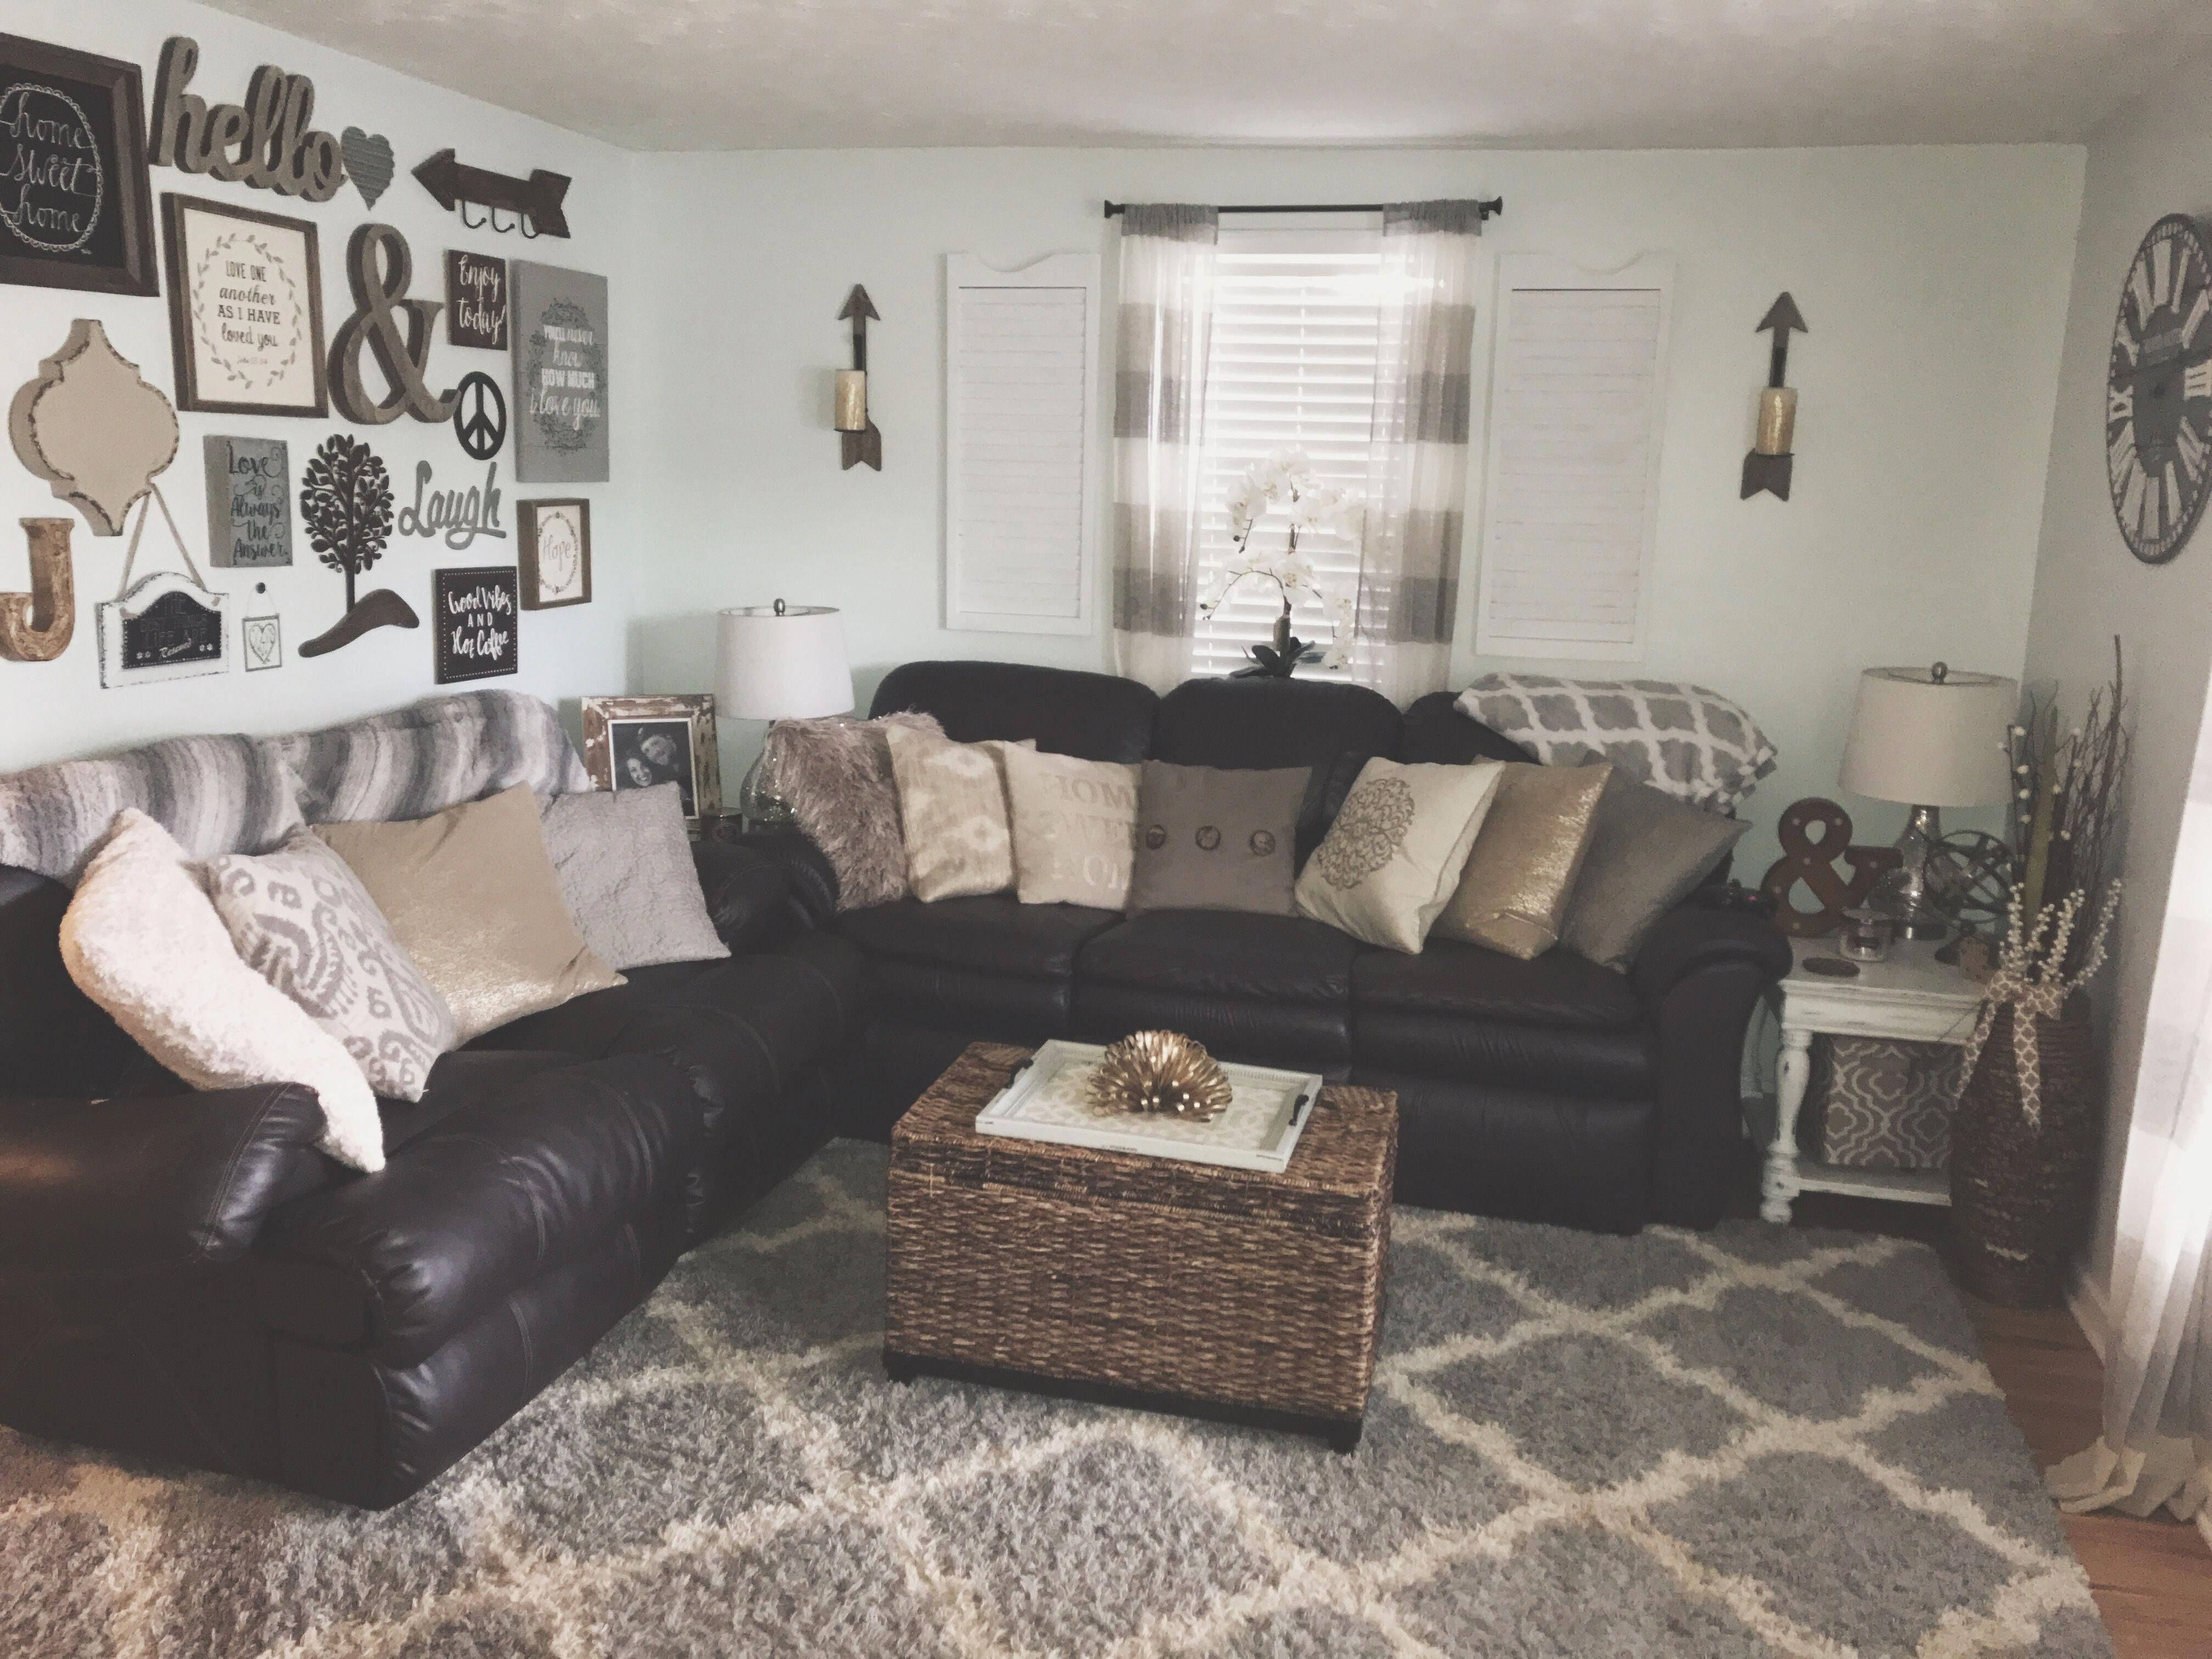 Cozy Rustic Farmhouse Glam Chic Inspired Living Room In Neutral Colors Mos Chic Colors Cozy Farmhouse Glam Inspired Living In 2020 Brown Couch Living Room Living Room White Living Room Grey